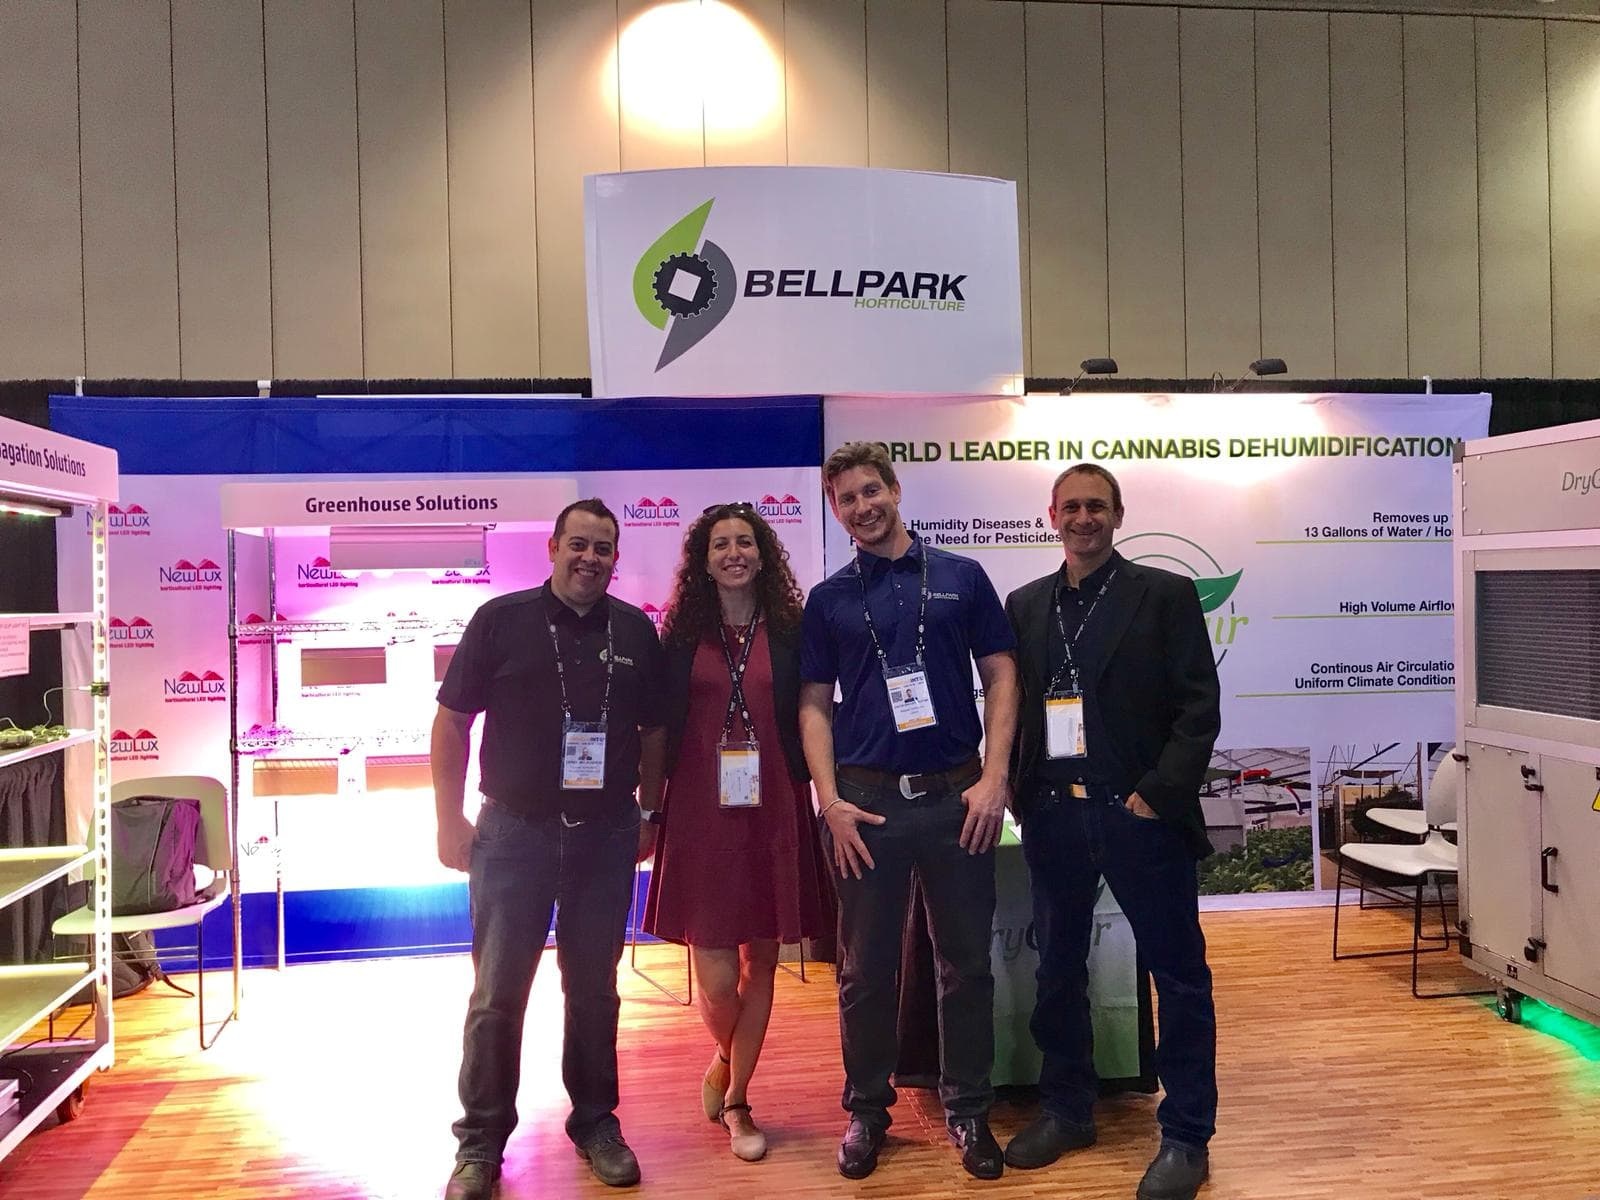 bellpark booth